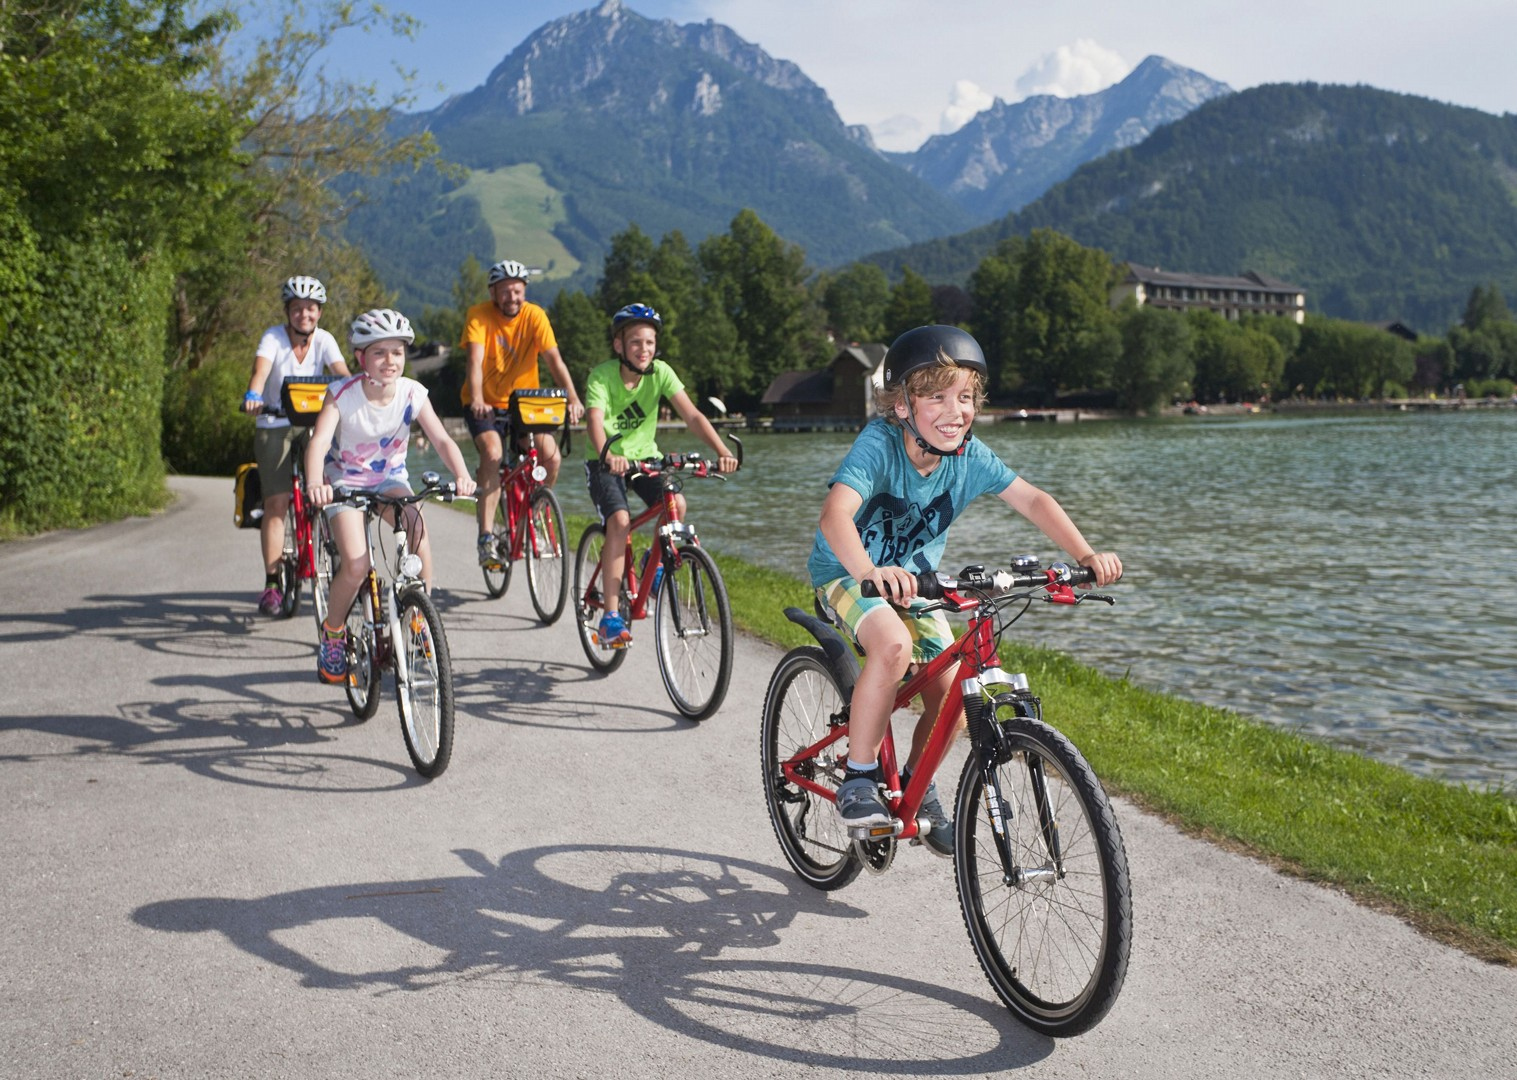 austria-austrian-lakes-self-guided-family-cycling-holiday.jpg - Austria - Salzburg's Lake District - Self-Guided Family Cycling Holiday - Family Cycling